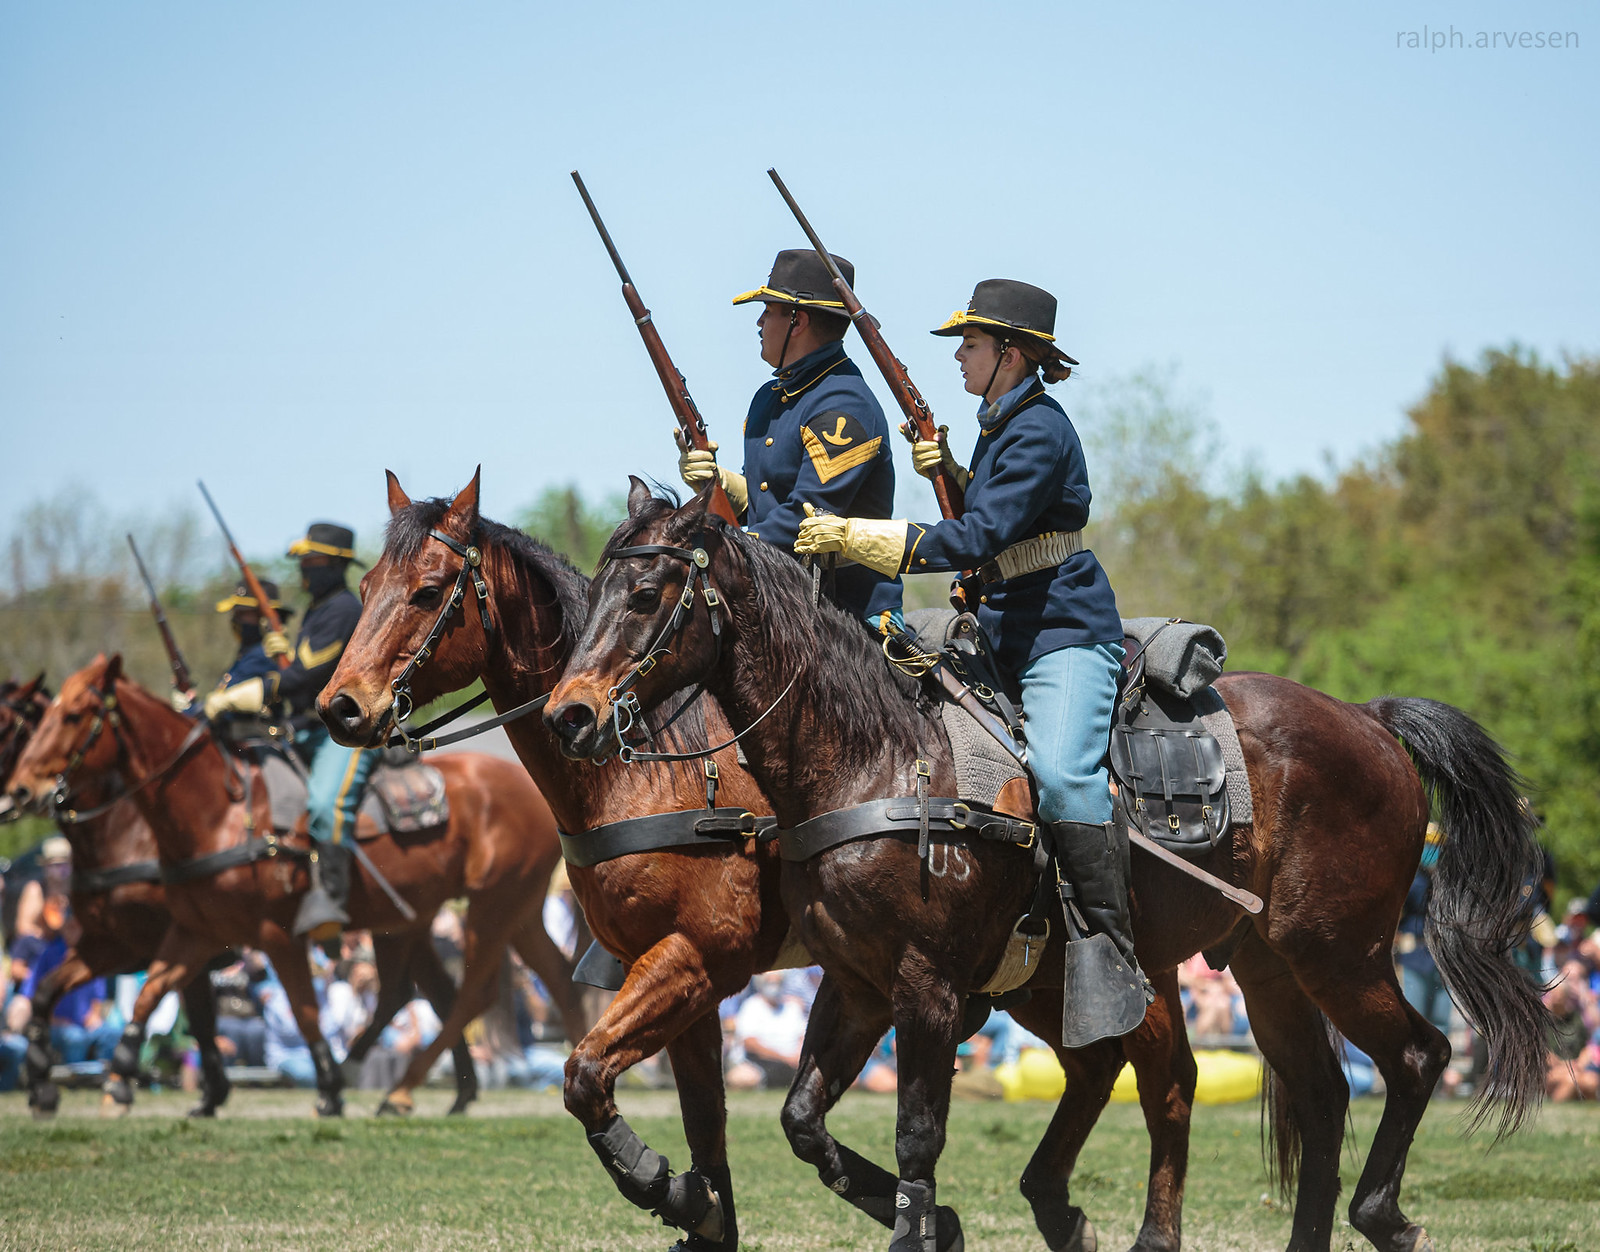 1st Cavalry Division Horse Cavalry Detachment | Texas Review | Ralph Arvesen